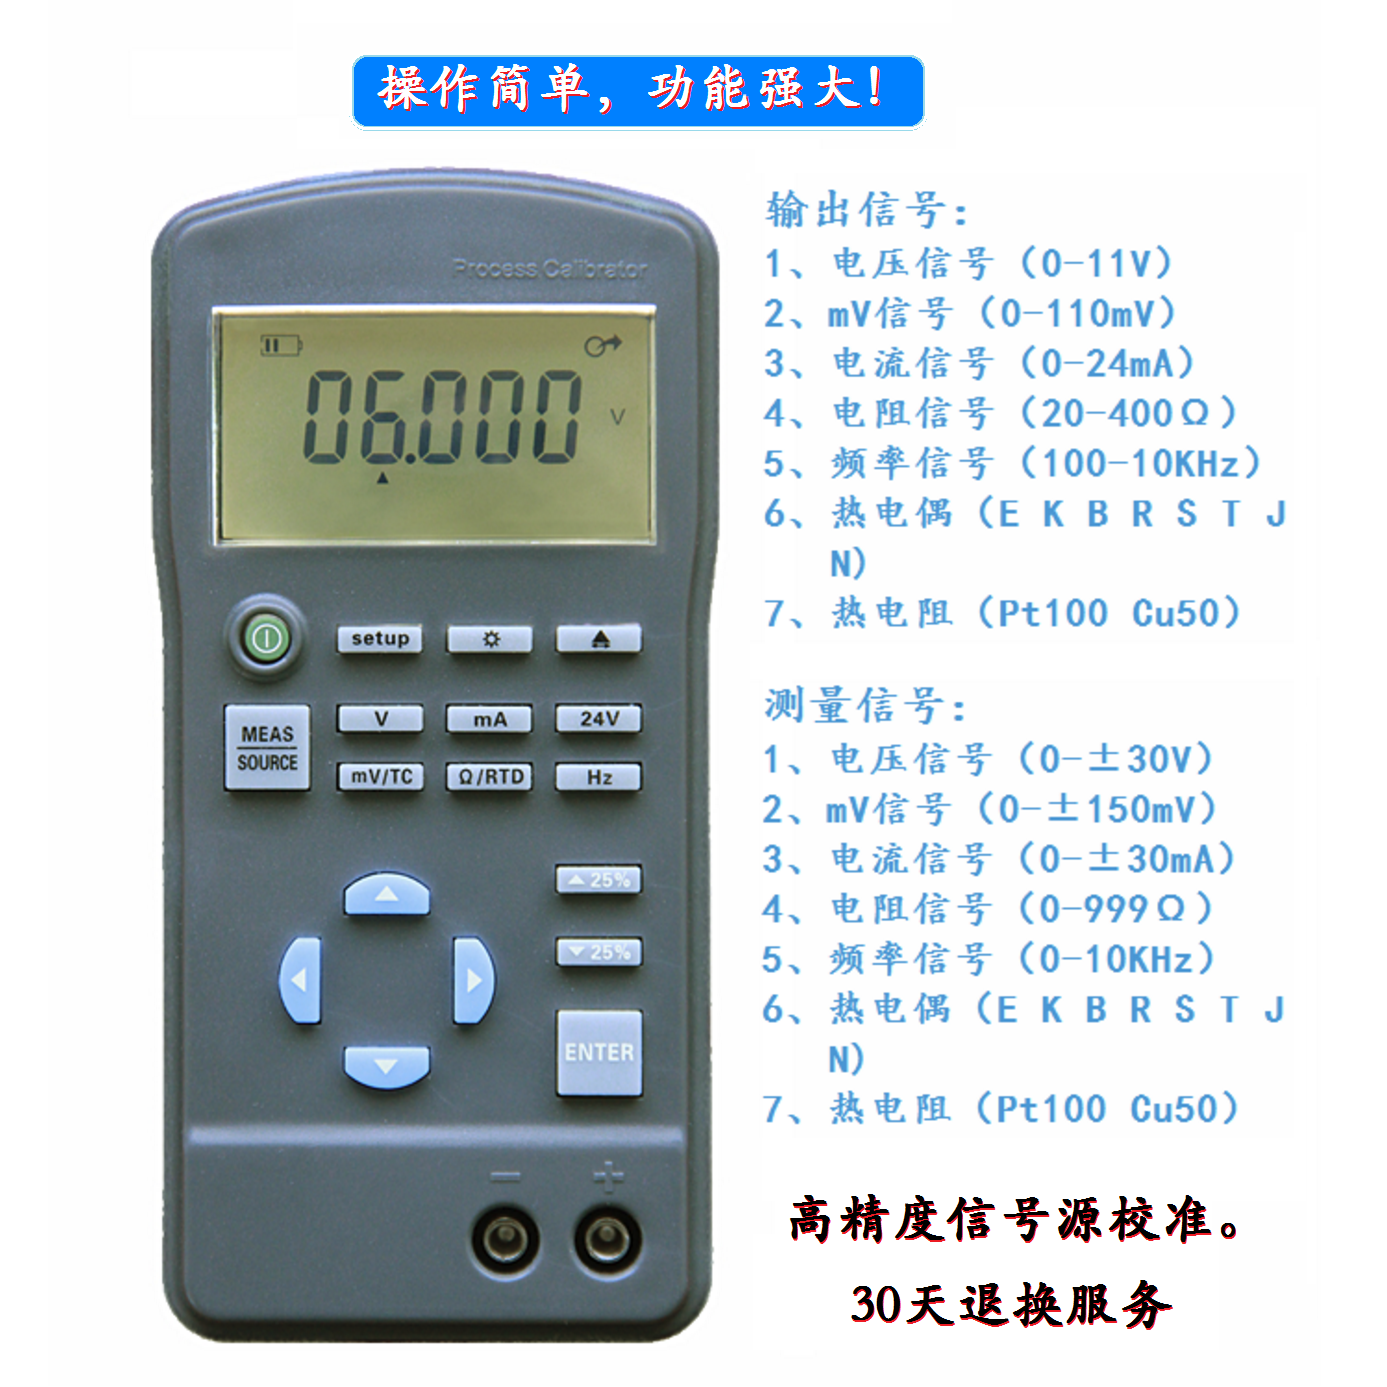 newest multifunction signal generator mr2 0pro 4 20ma smart calibrator for thermocouple resistance urrent and voltage frequency HG-S309 Signal Generator, 4-20mA/0-10V/mV Thermocouple Current Meter, Signal Source Calibrator